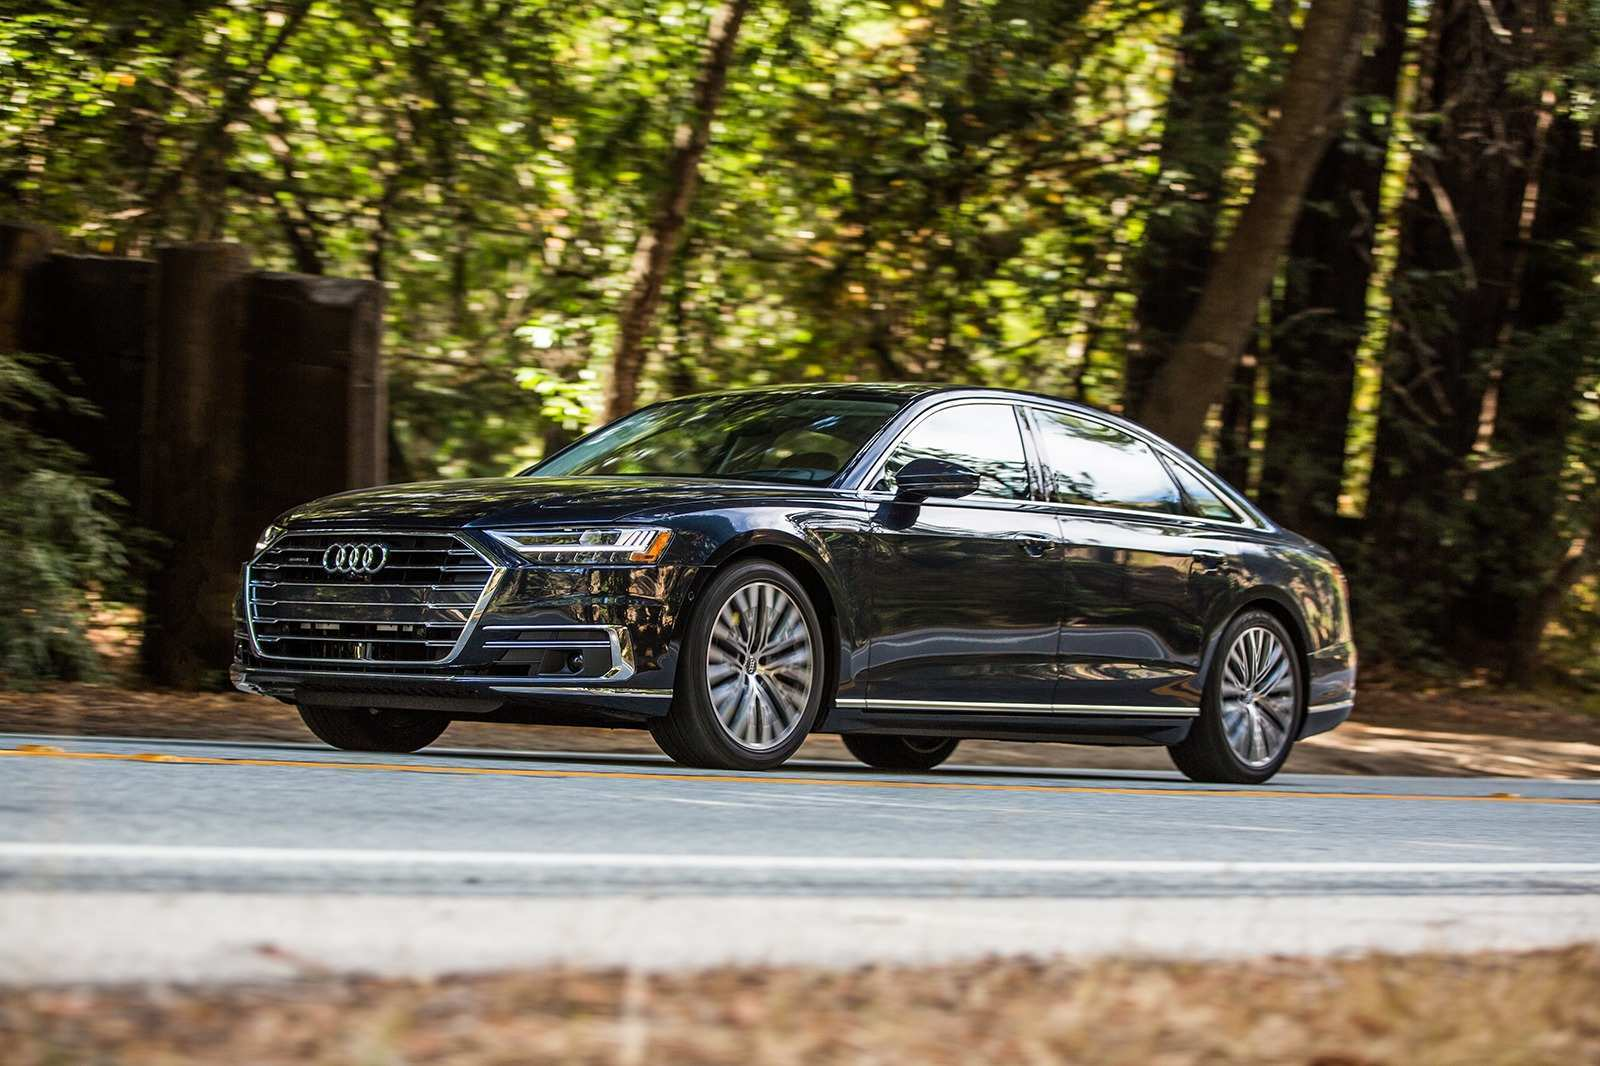 85 All New New 2019 Audi Build And Price Redesign And Price Engine by New 2019 Audi Build And Price Redesign And Price